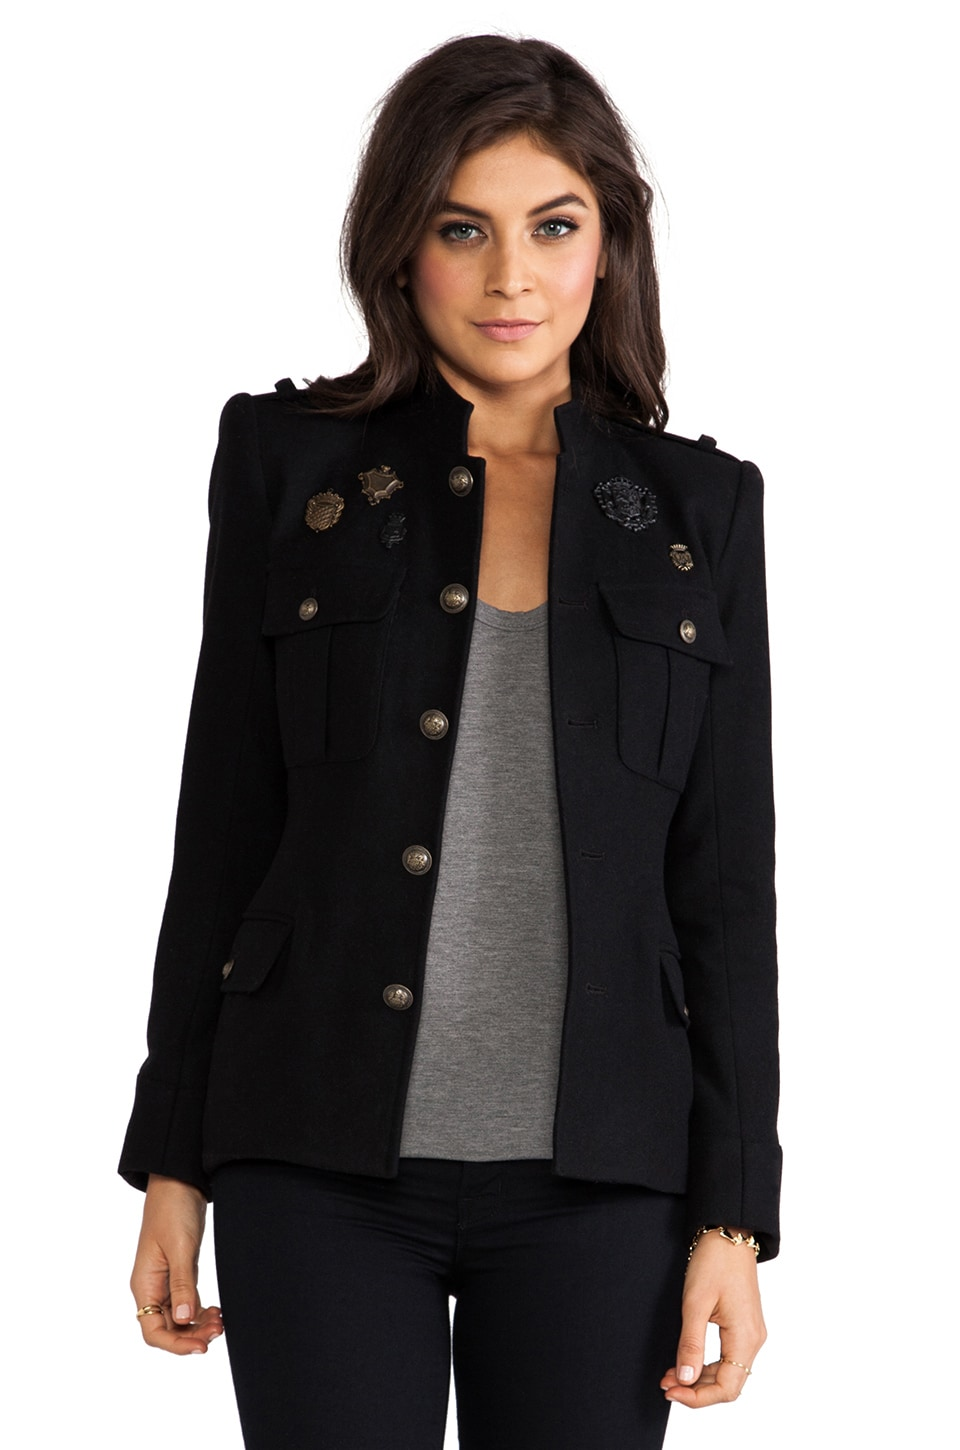 Skaist Taylor Cadel Medals Jacket in Black